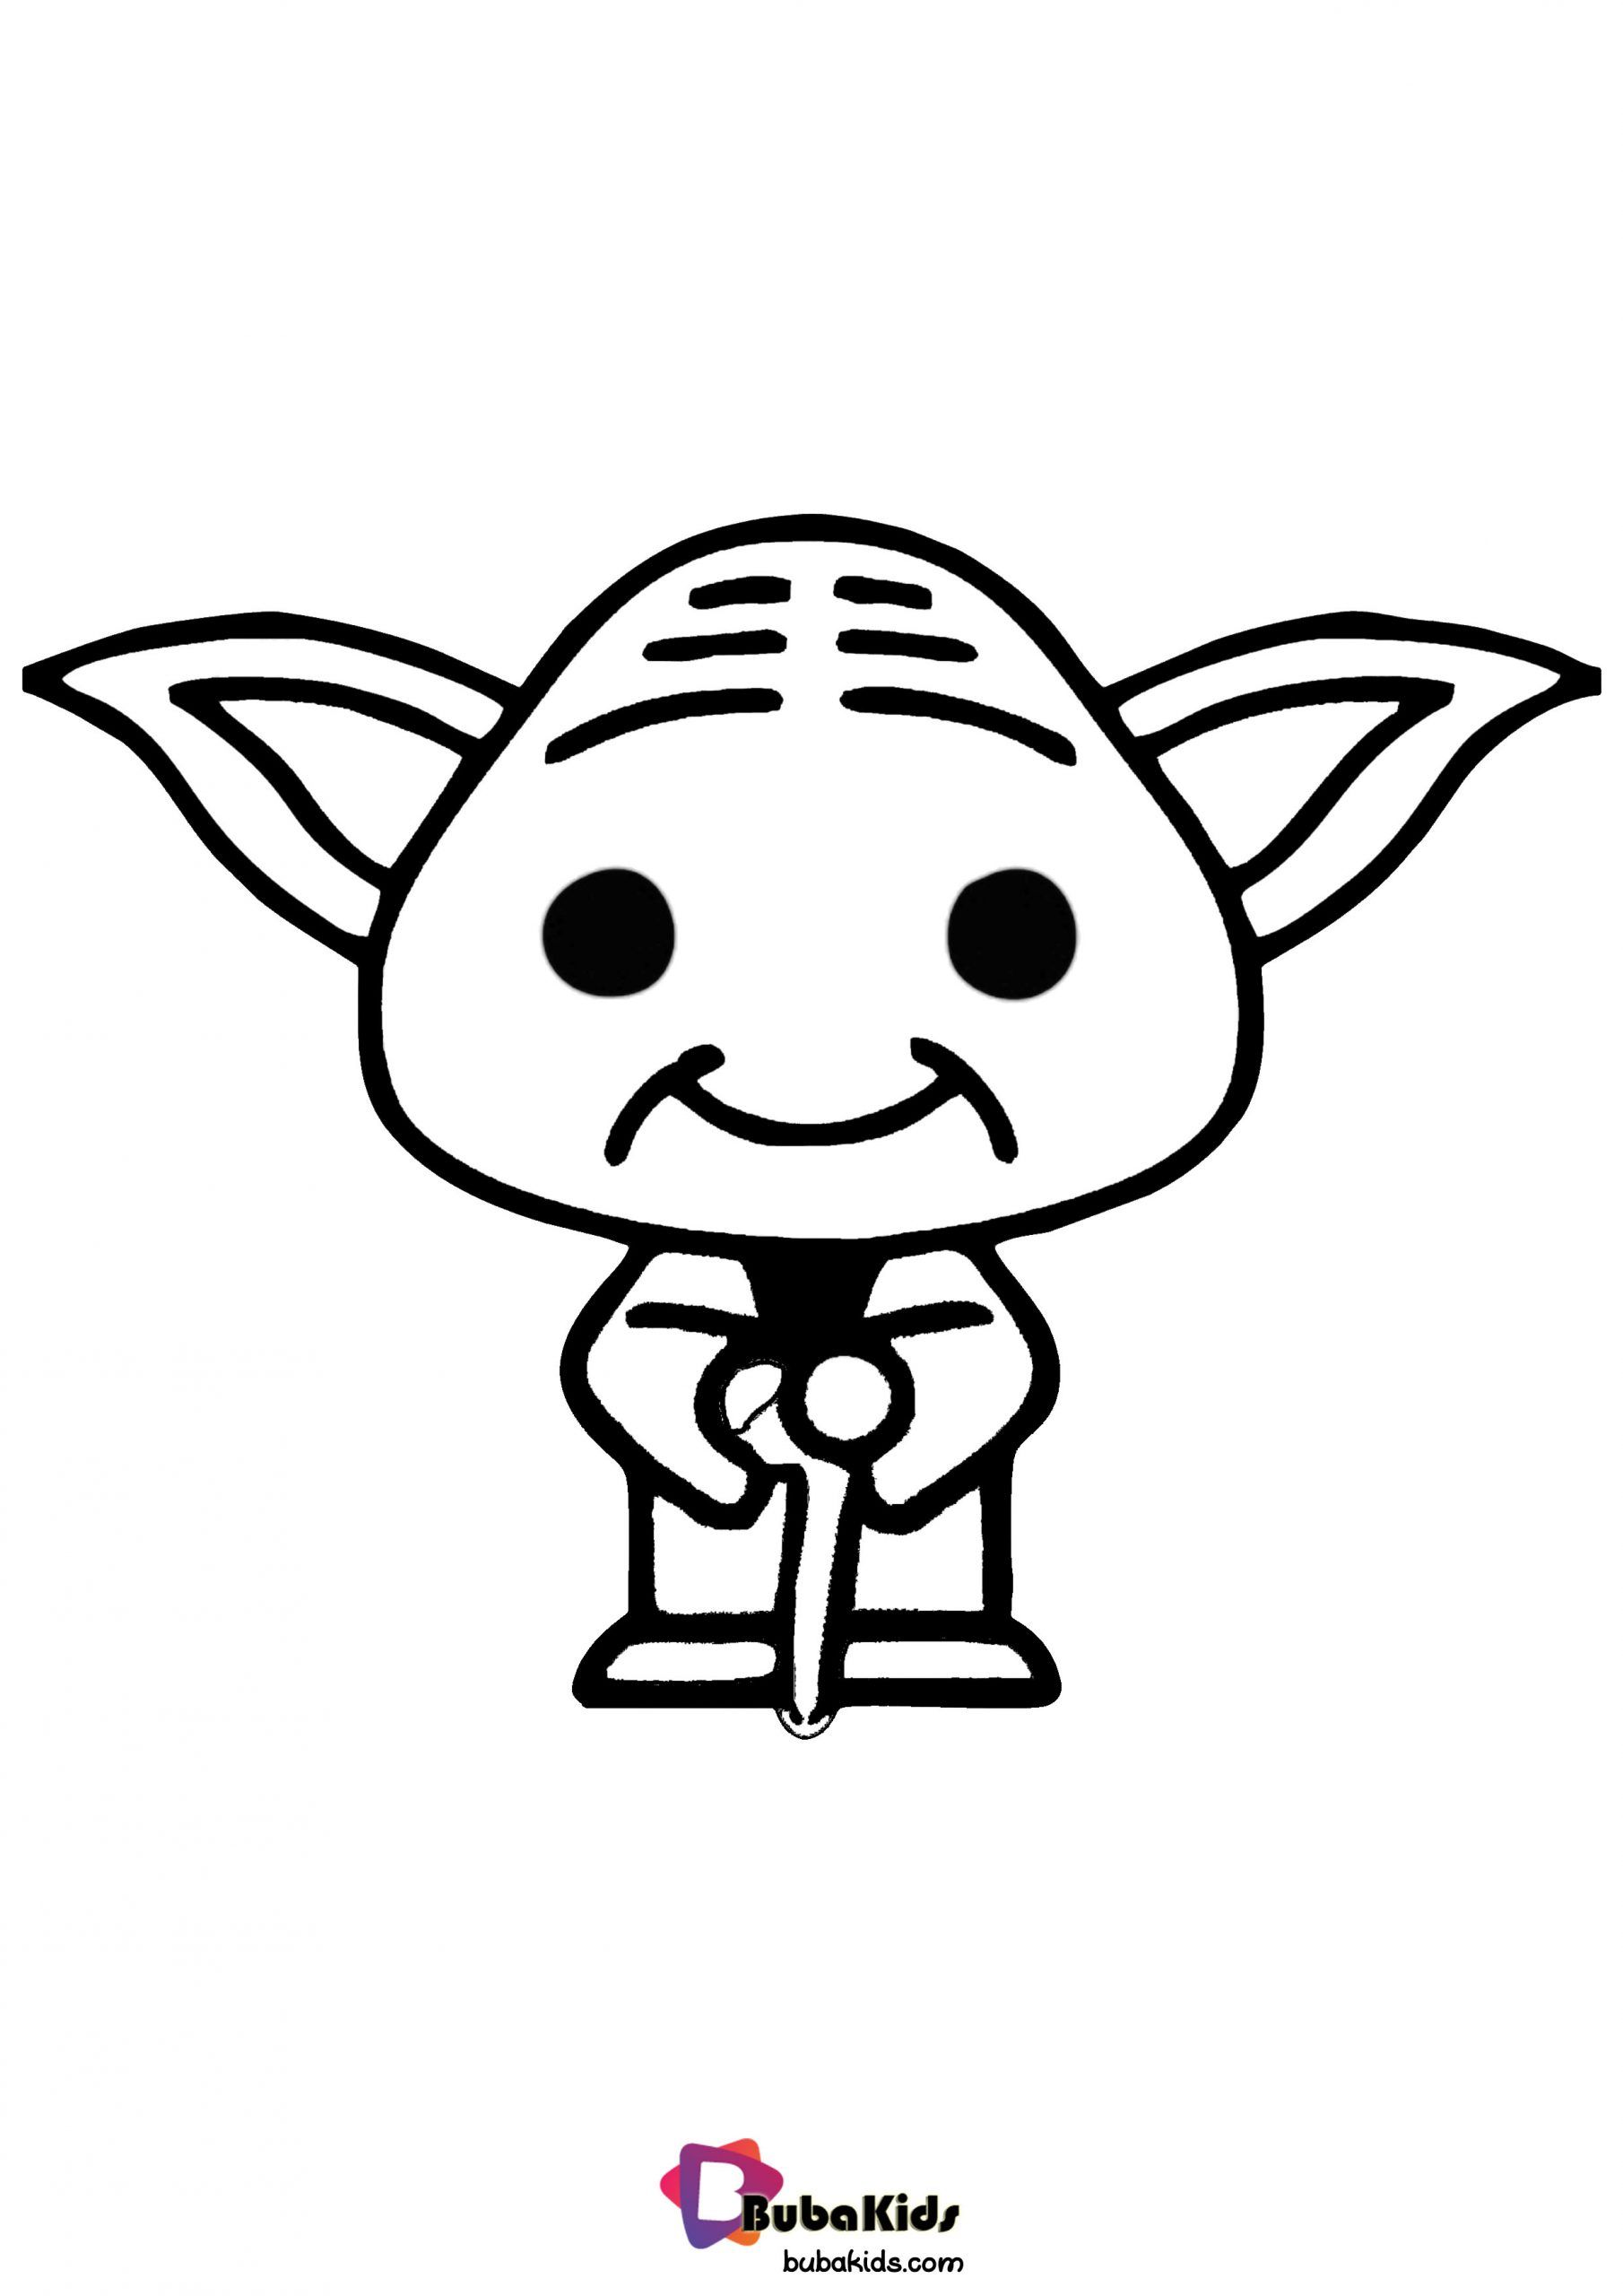 Baby Yoda Coloring Book Pages In 2021 Coloring Book Pages Coloring Books Printable Coloring Pages